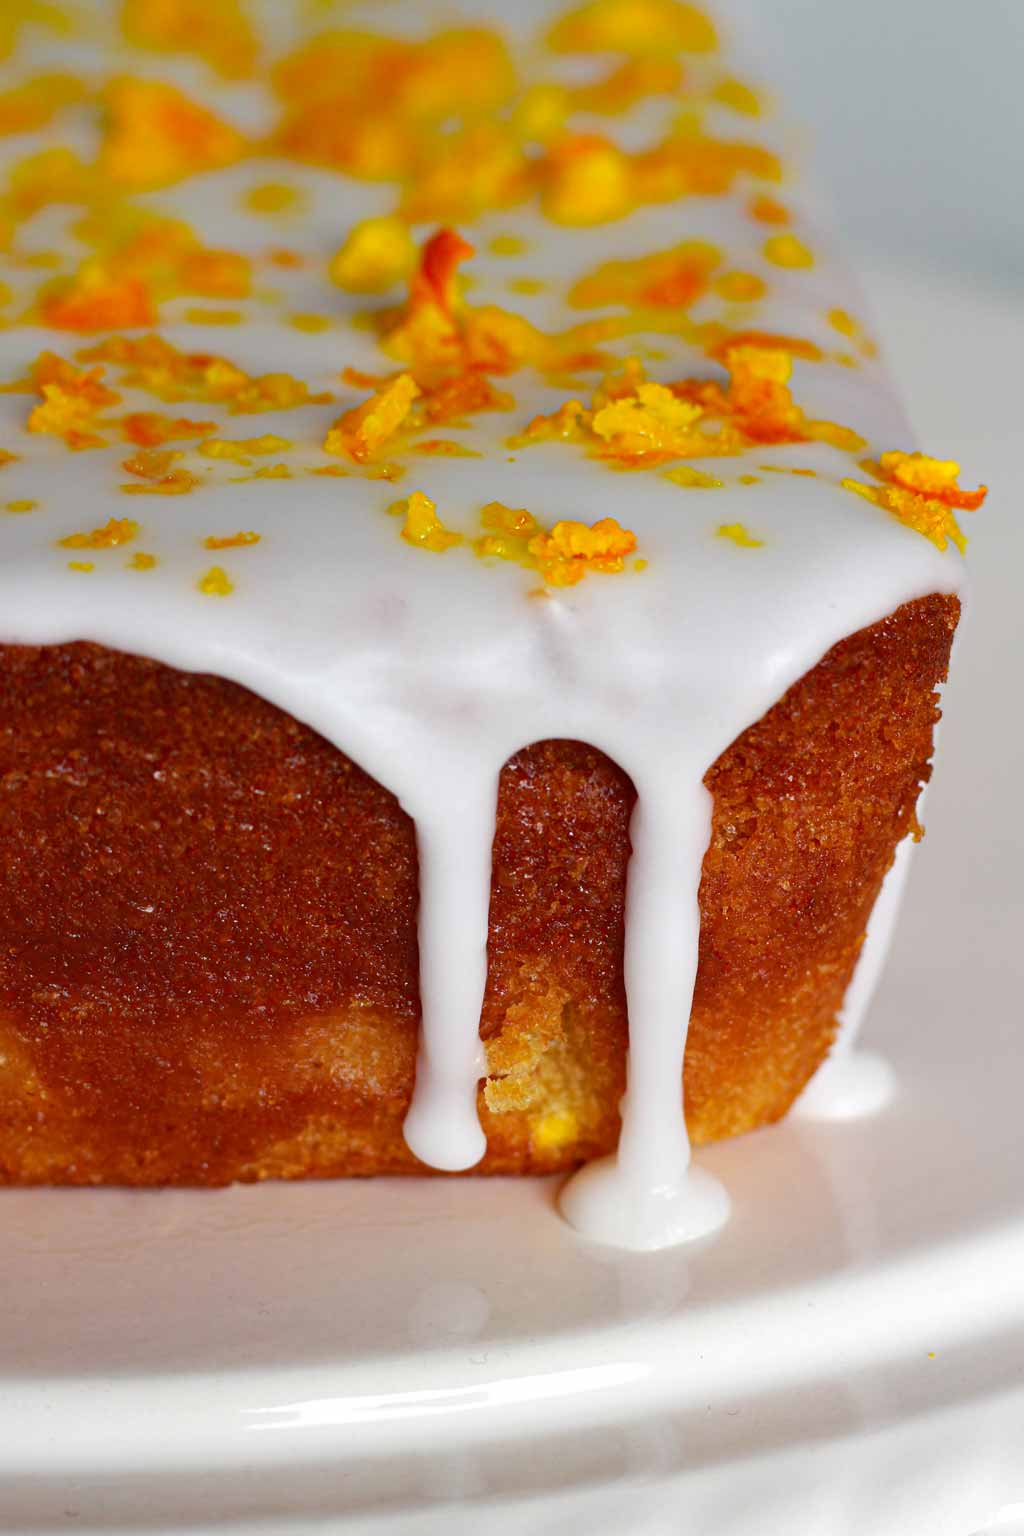 close up of Vegan Orange Cake with white icing dripping down the side